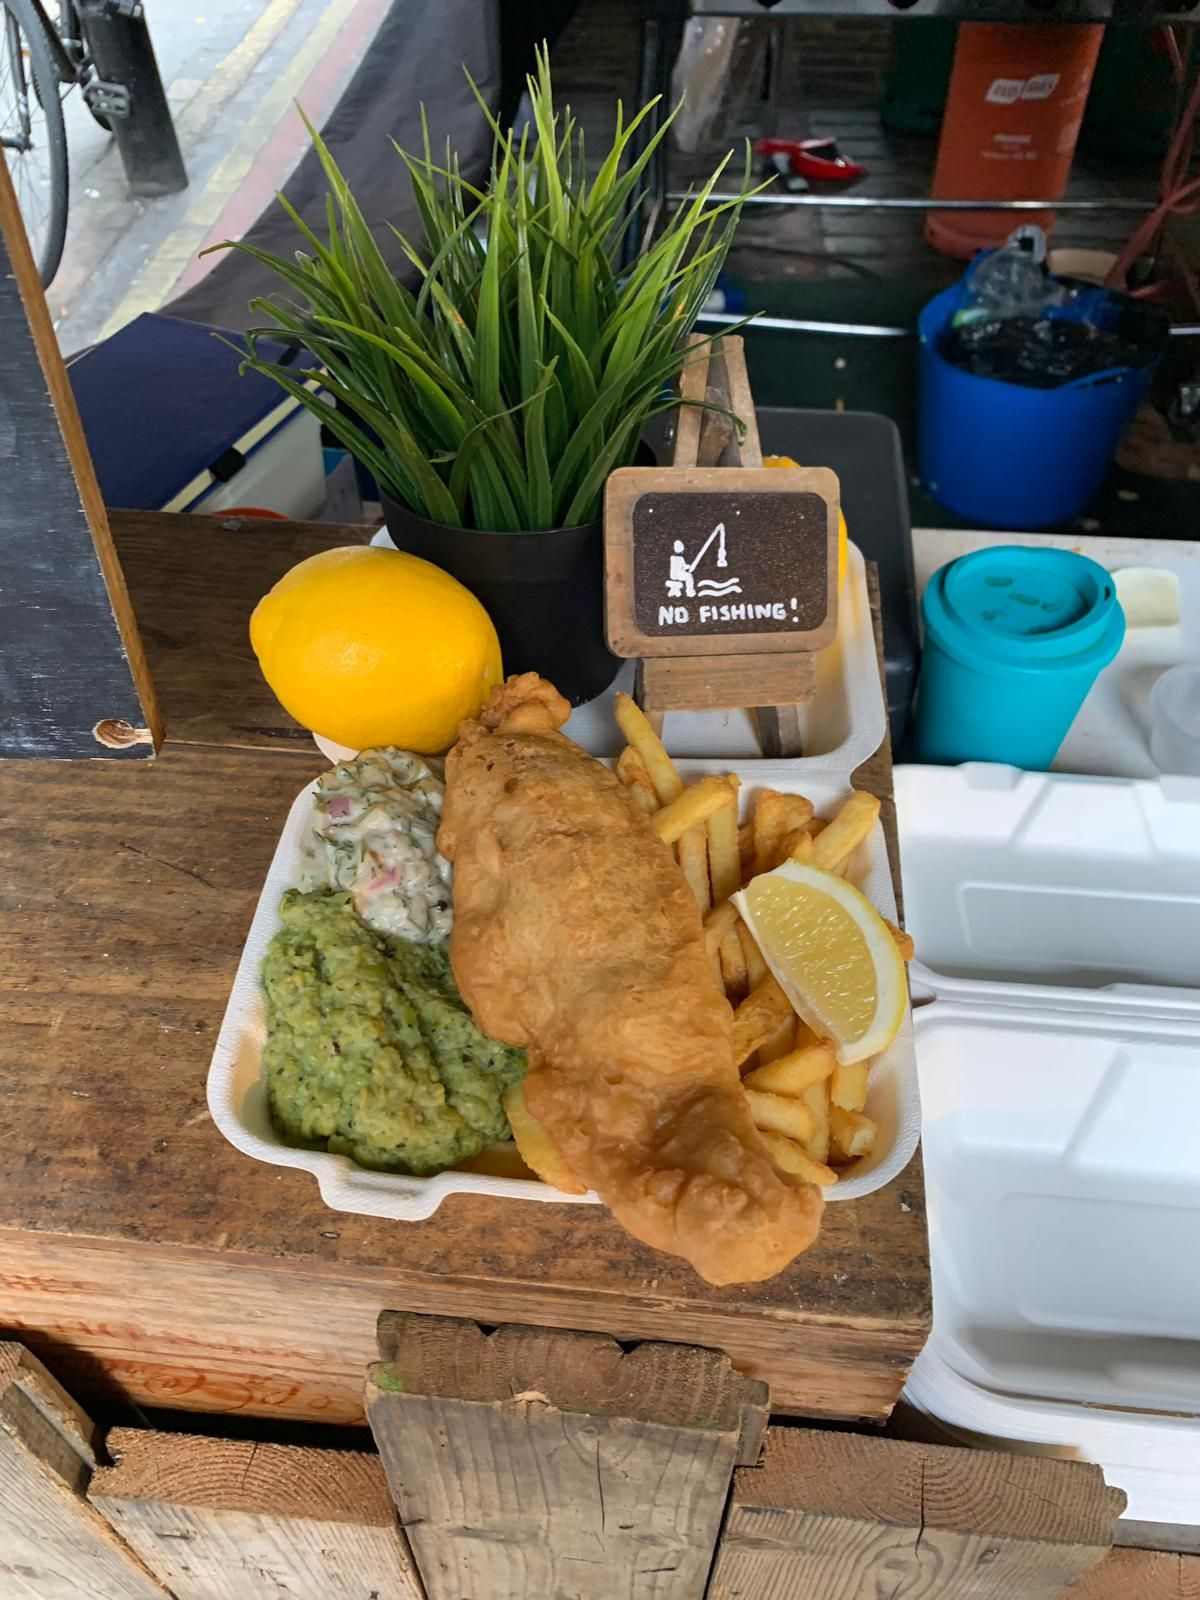 The Best Allergy Friendly Fish And Chips In London Enjoy A Classic British Meal Delic London Fish And Chips Vegan Fish And Chips Gluten Free Fish And Chips